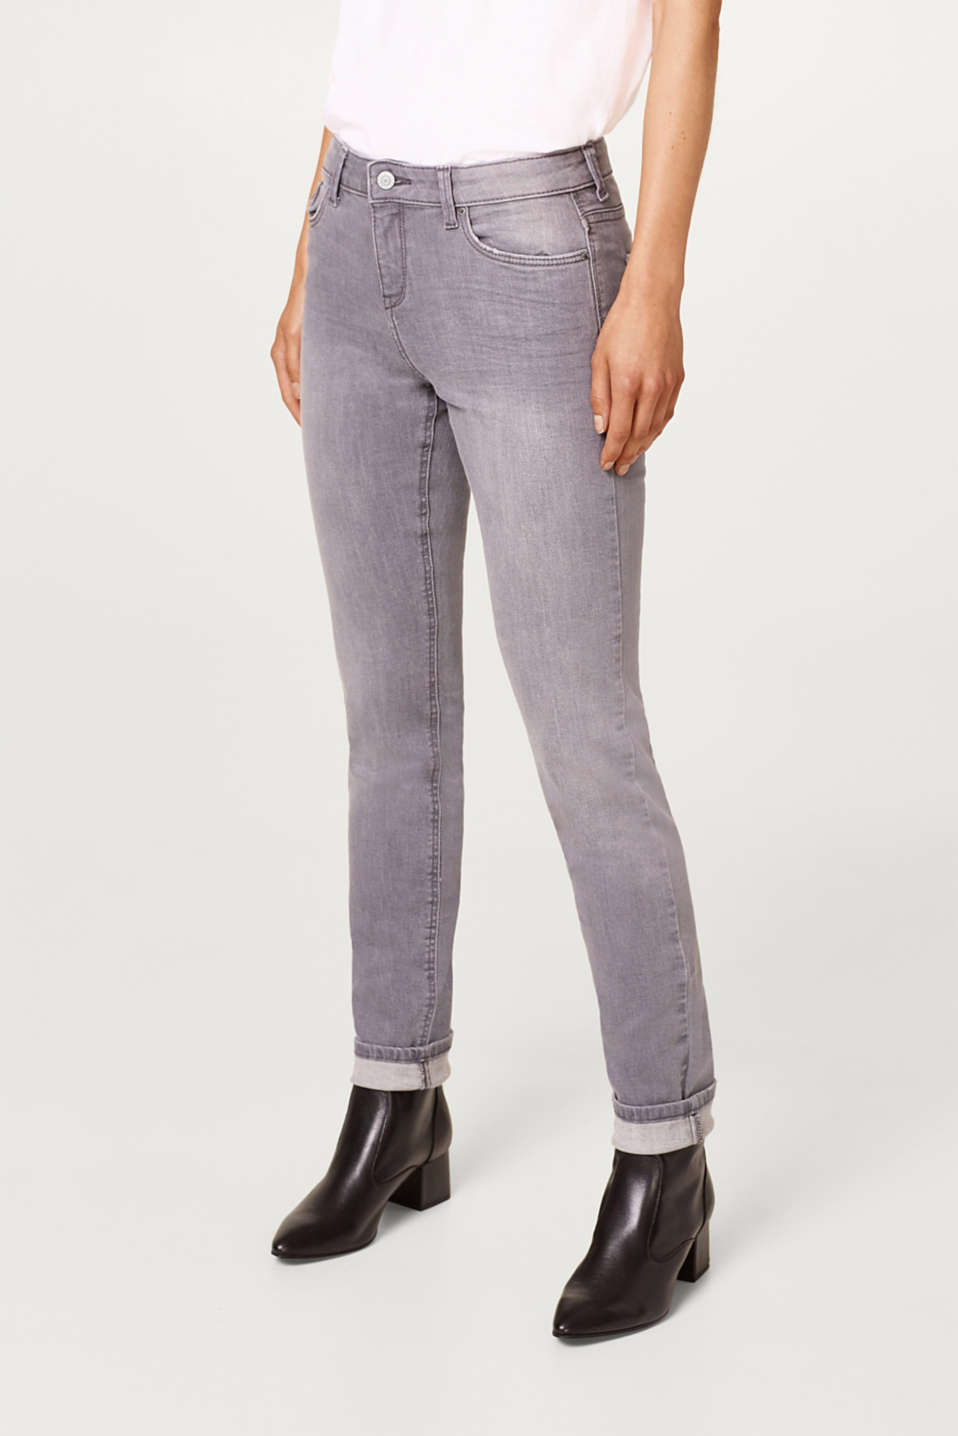 Esprit - Stretch jeans in soft tracksuit fabric